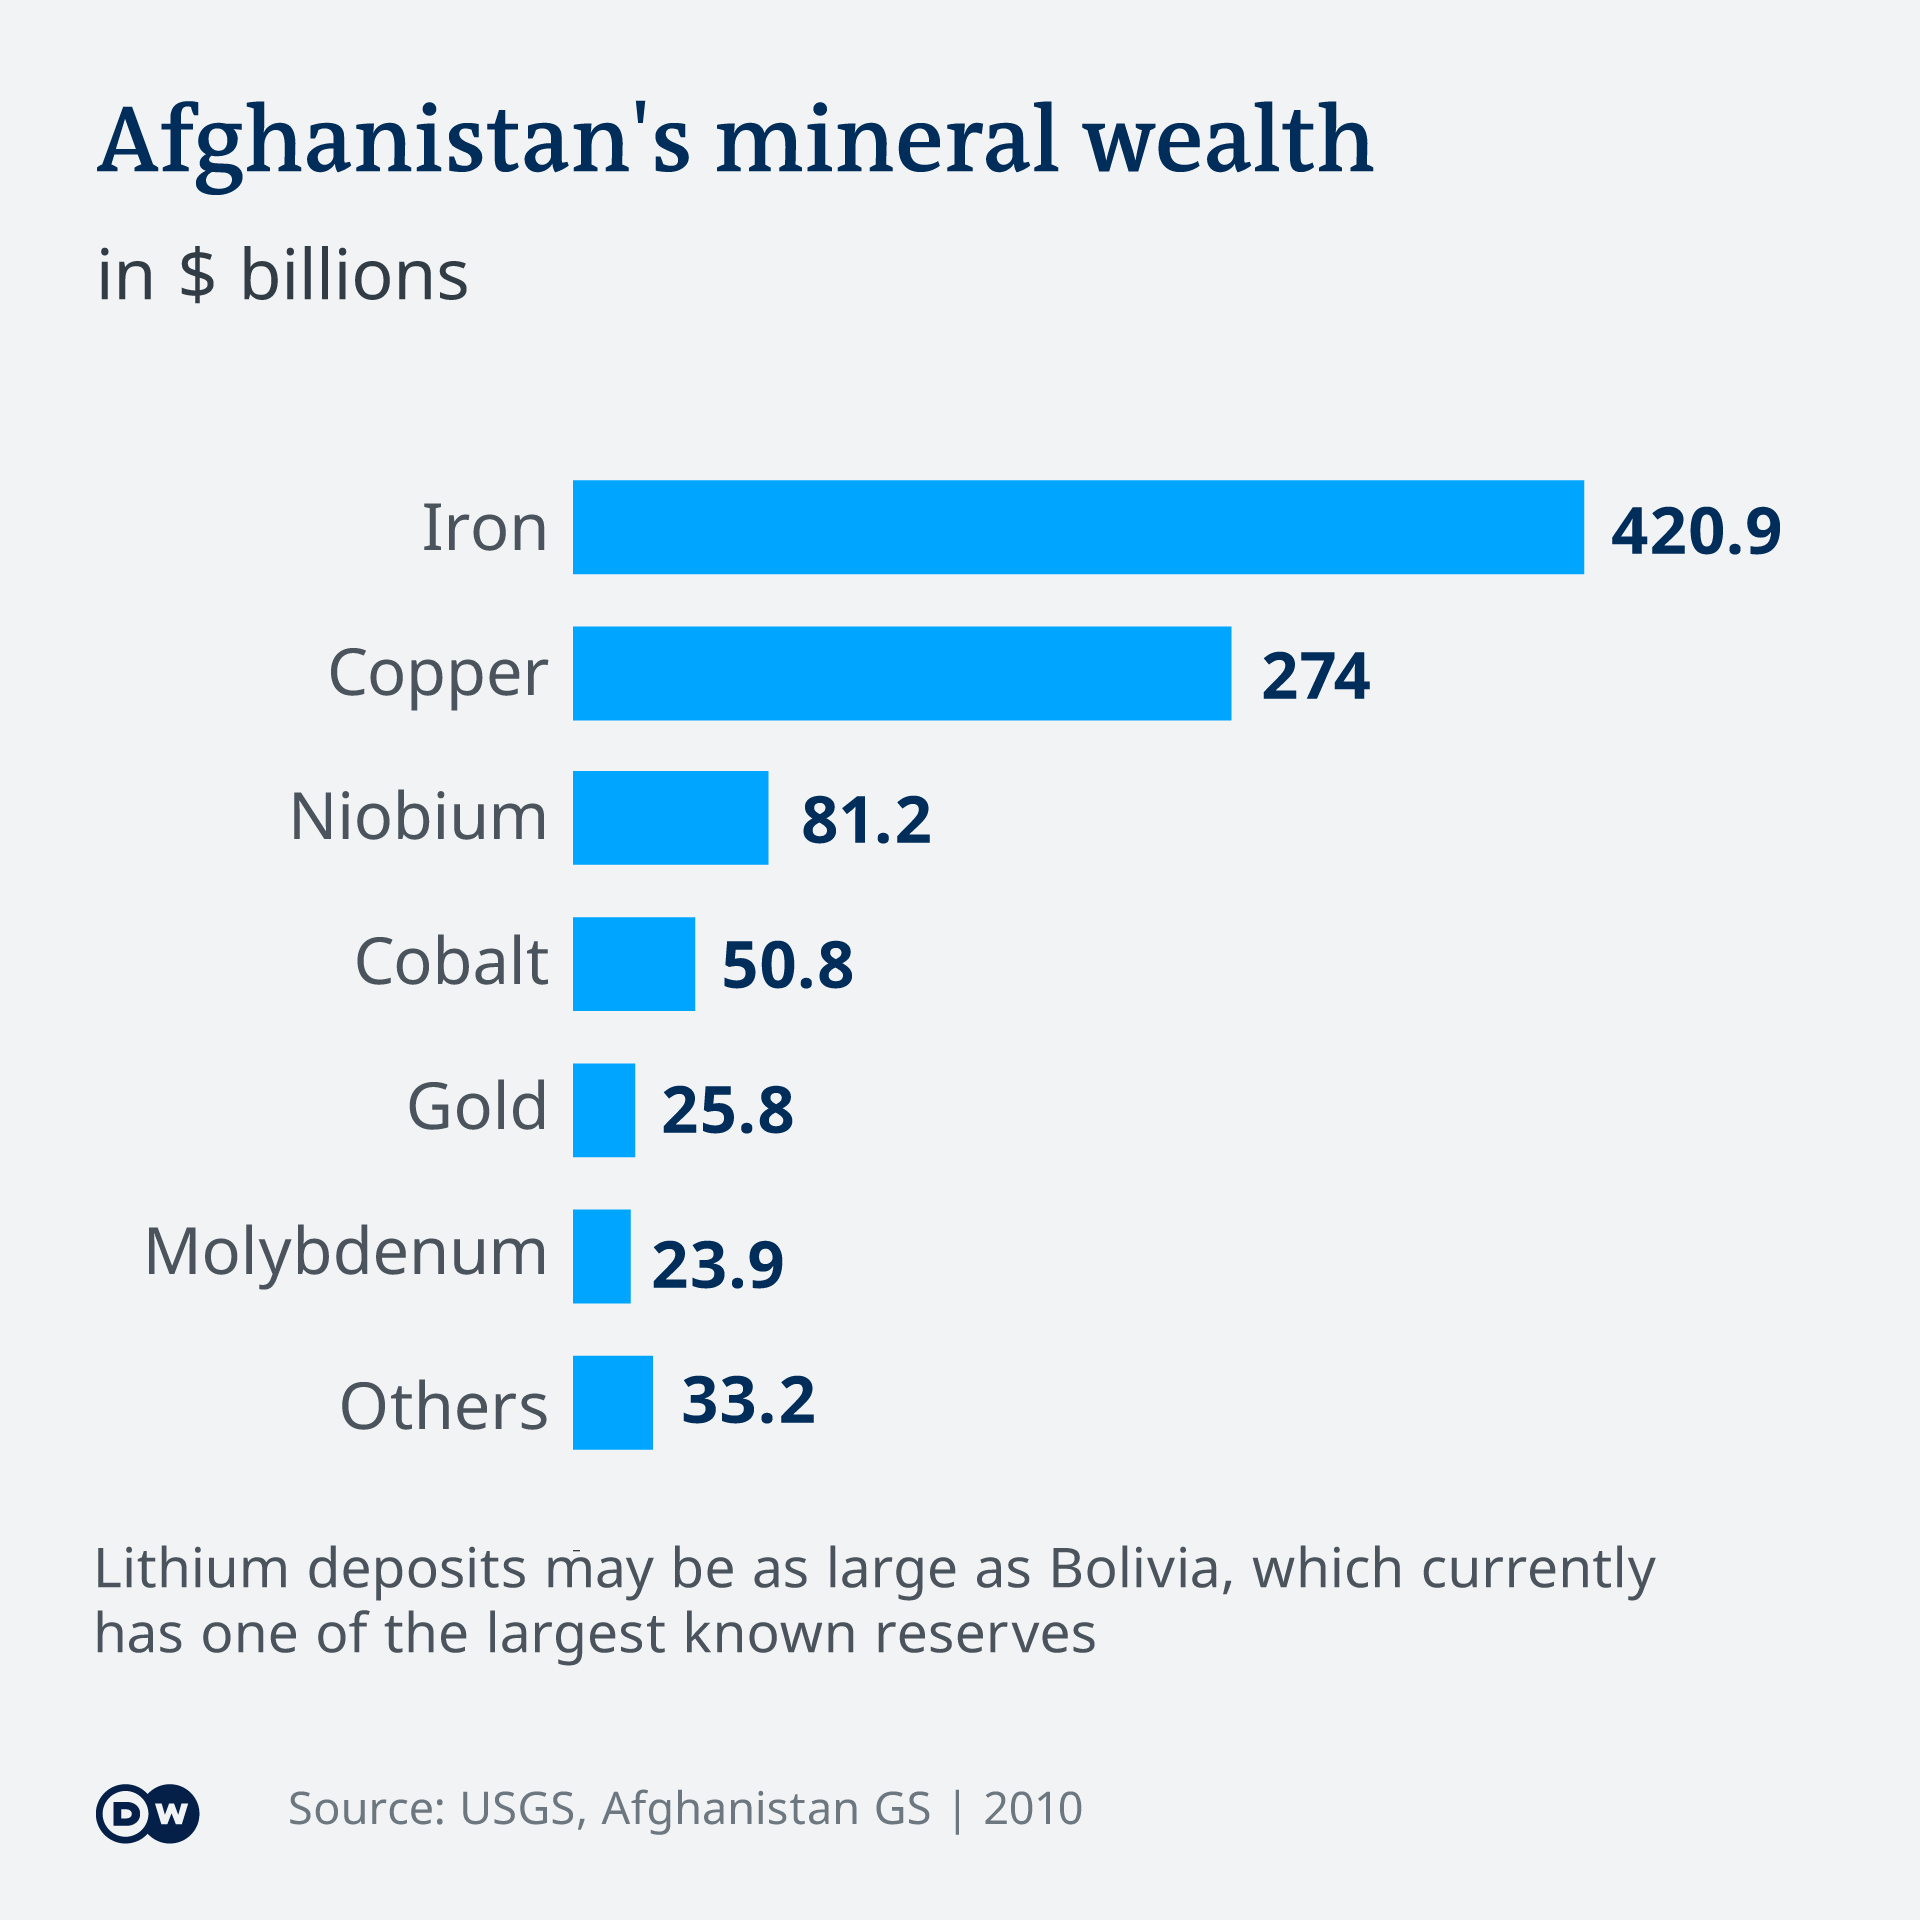 An info graphic showing the dollar values (in billion) of iron, copper, niobium, cobalt, gold, molybdenum and other minerals in Afghanistan